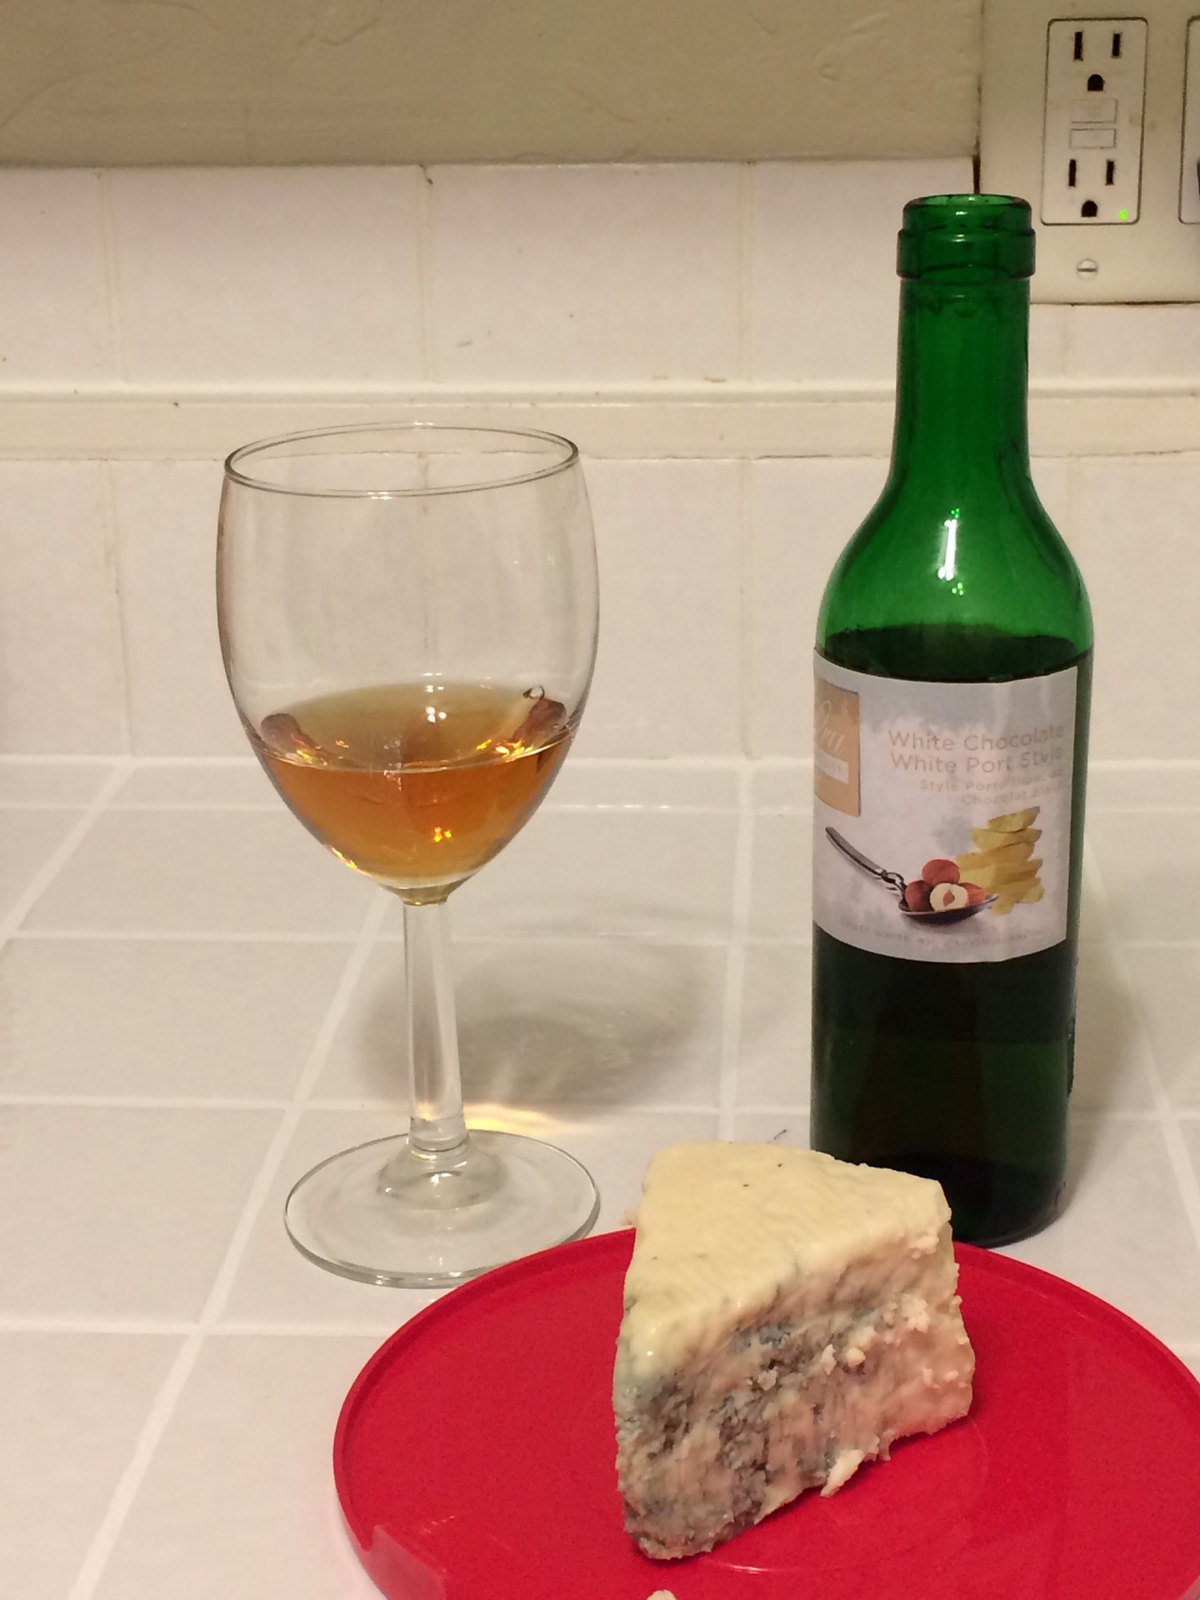 White Chocolate White Port Style and Blue Cheese 1